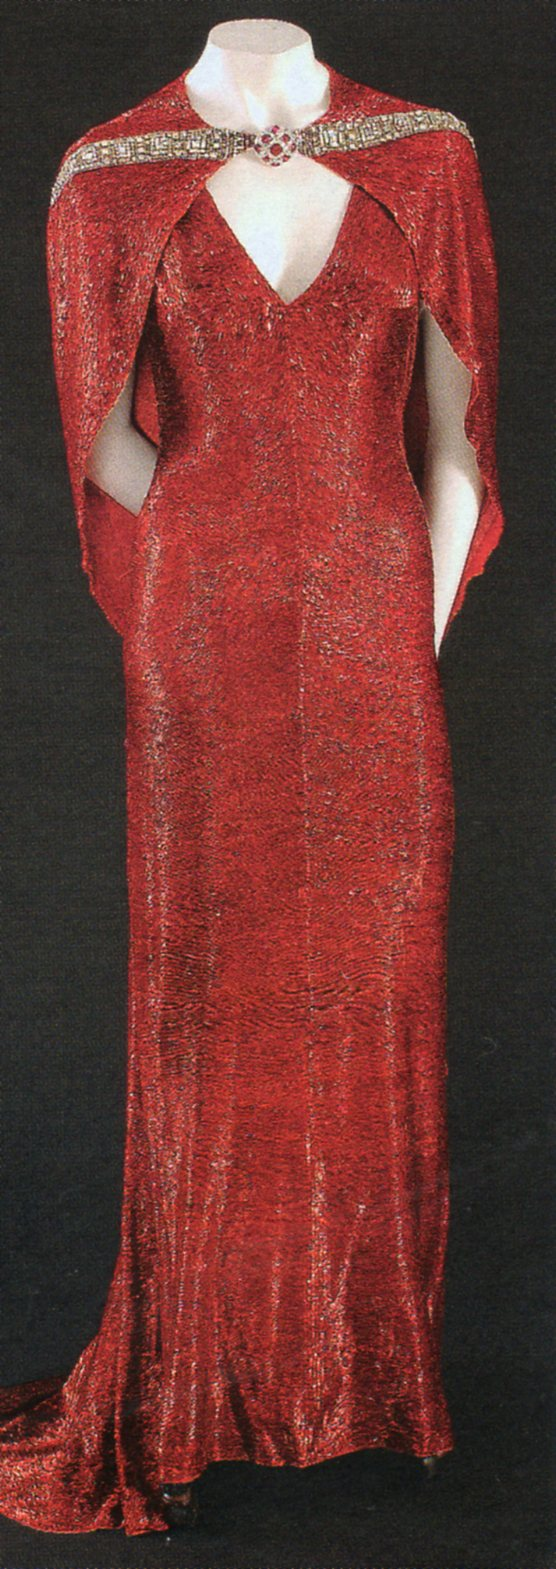 "Adrian  dress for Joan Crawford, ""The Bride wore Red"", 1937"